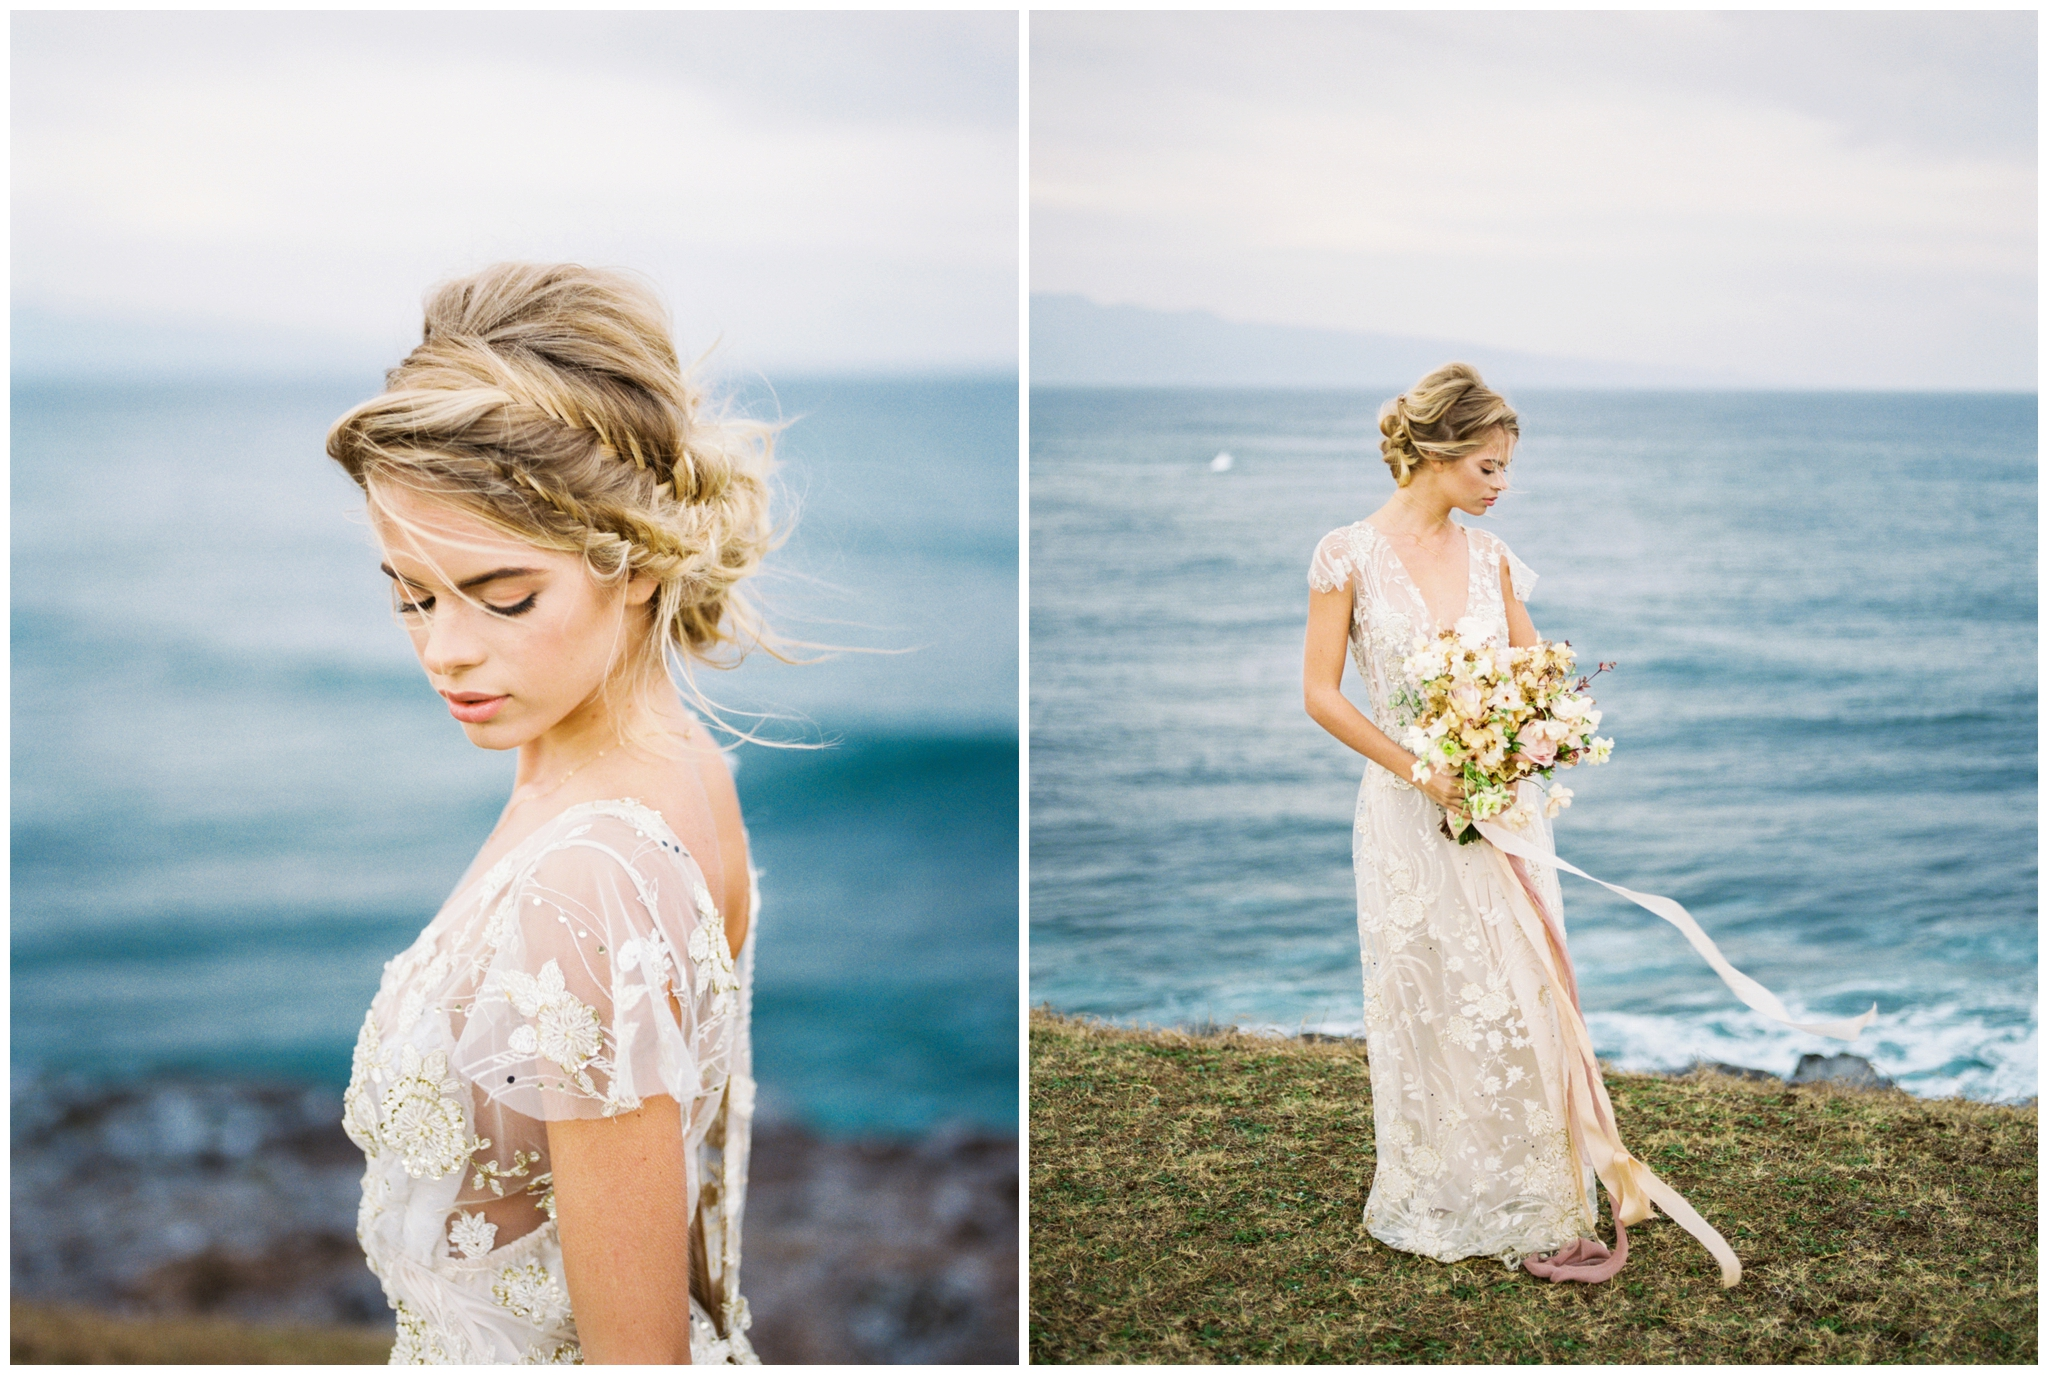 juliet ashley photography - maui wedding photographer